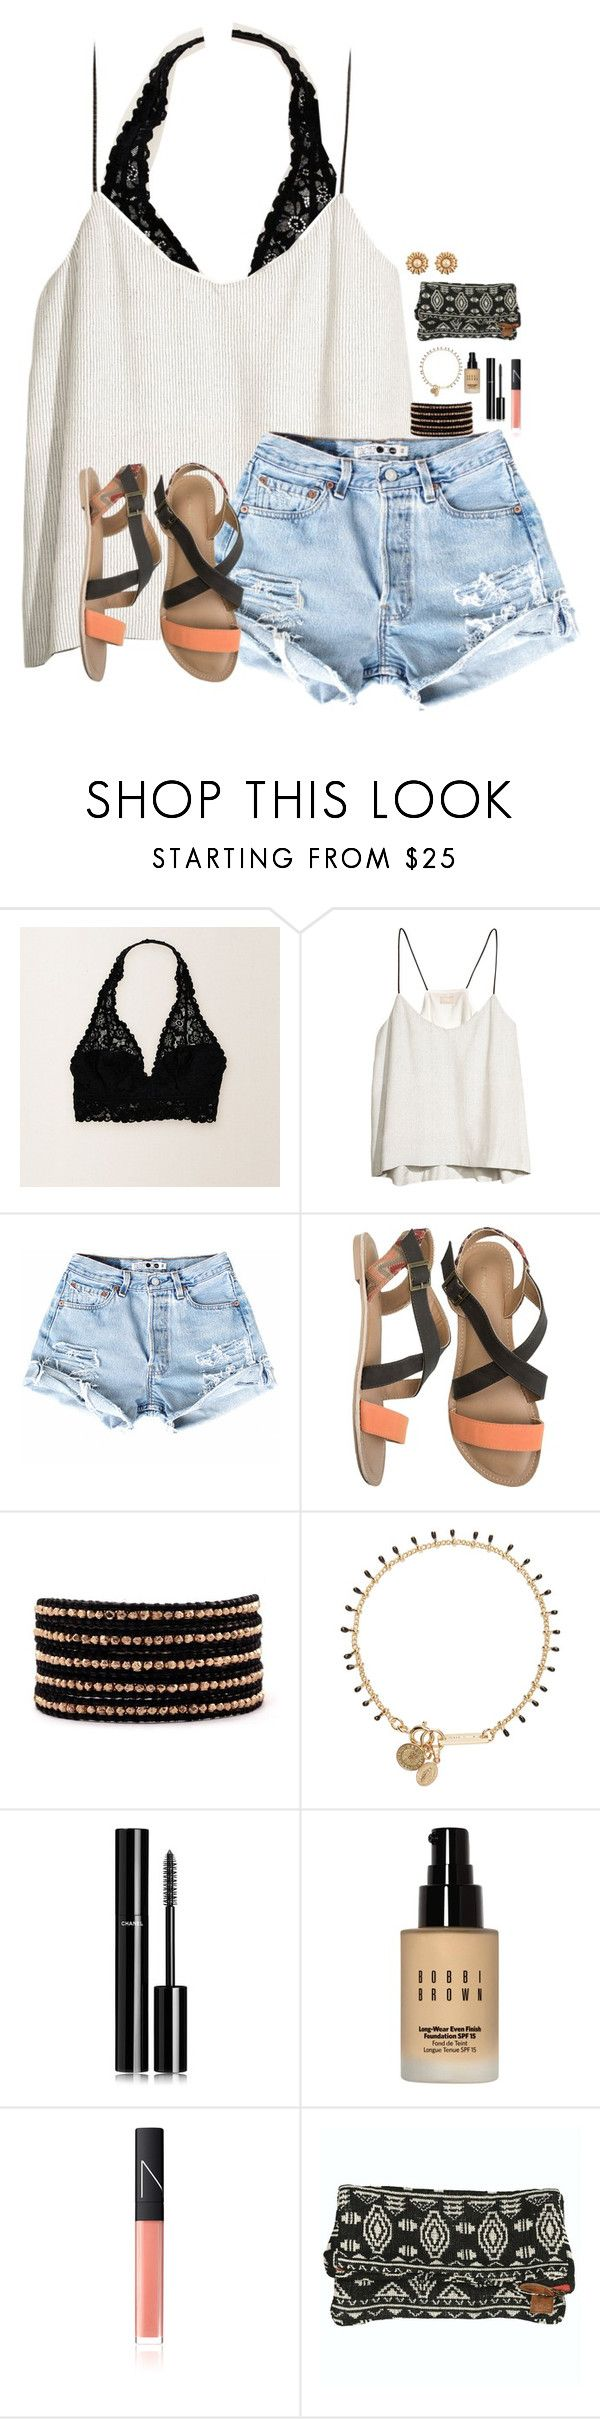 """""""I love aerie!!"""" by madison426 ❤ liked on Polyvore featuring Aerie, H&M, O'Neill, Chan Luu, Isabel Marant, Chanel, Bobbi Brown Cosmetics, NARS Cosmetics, Billabong and Tory Burch"""